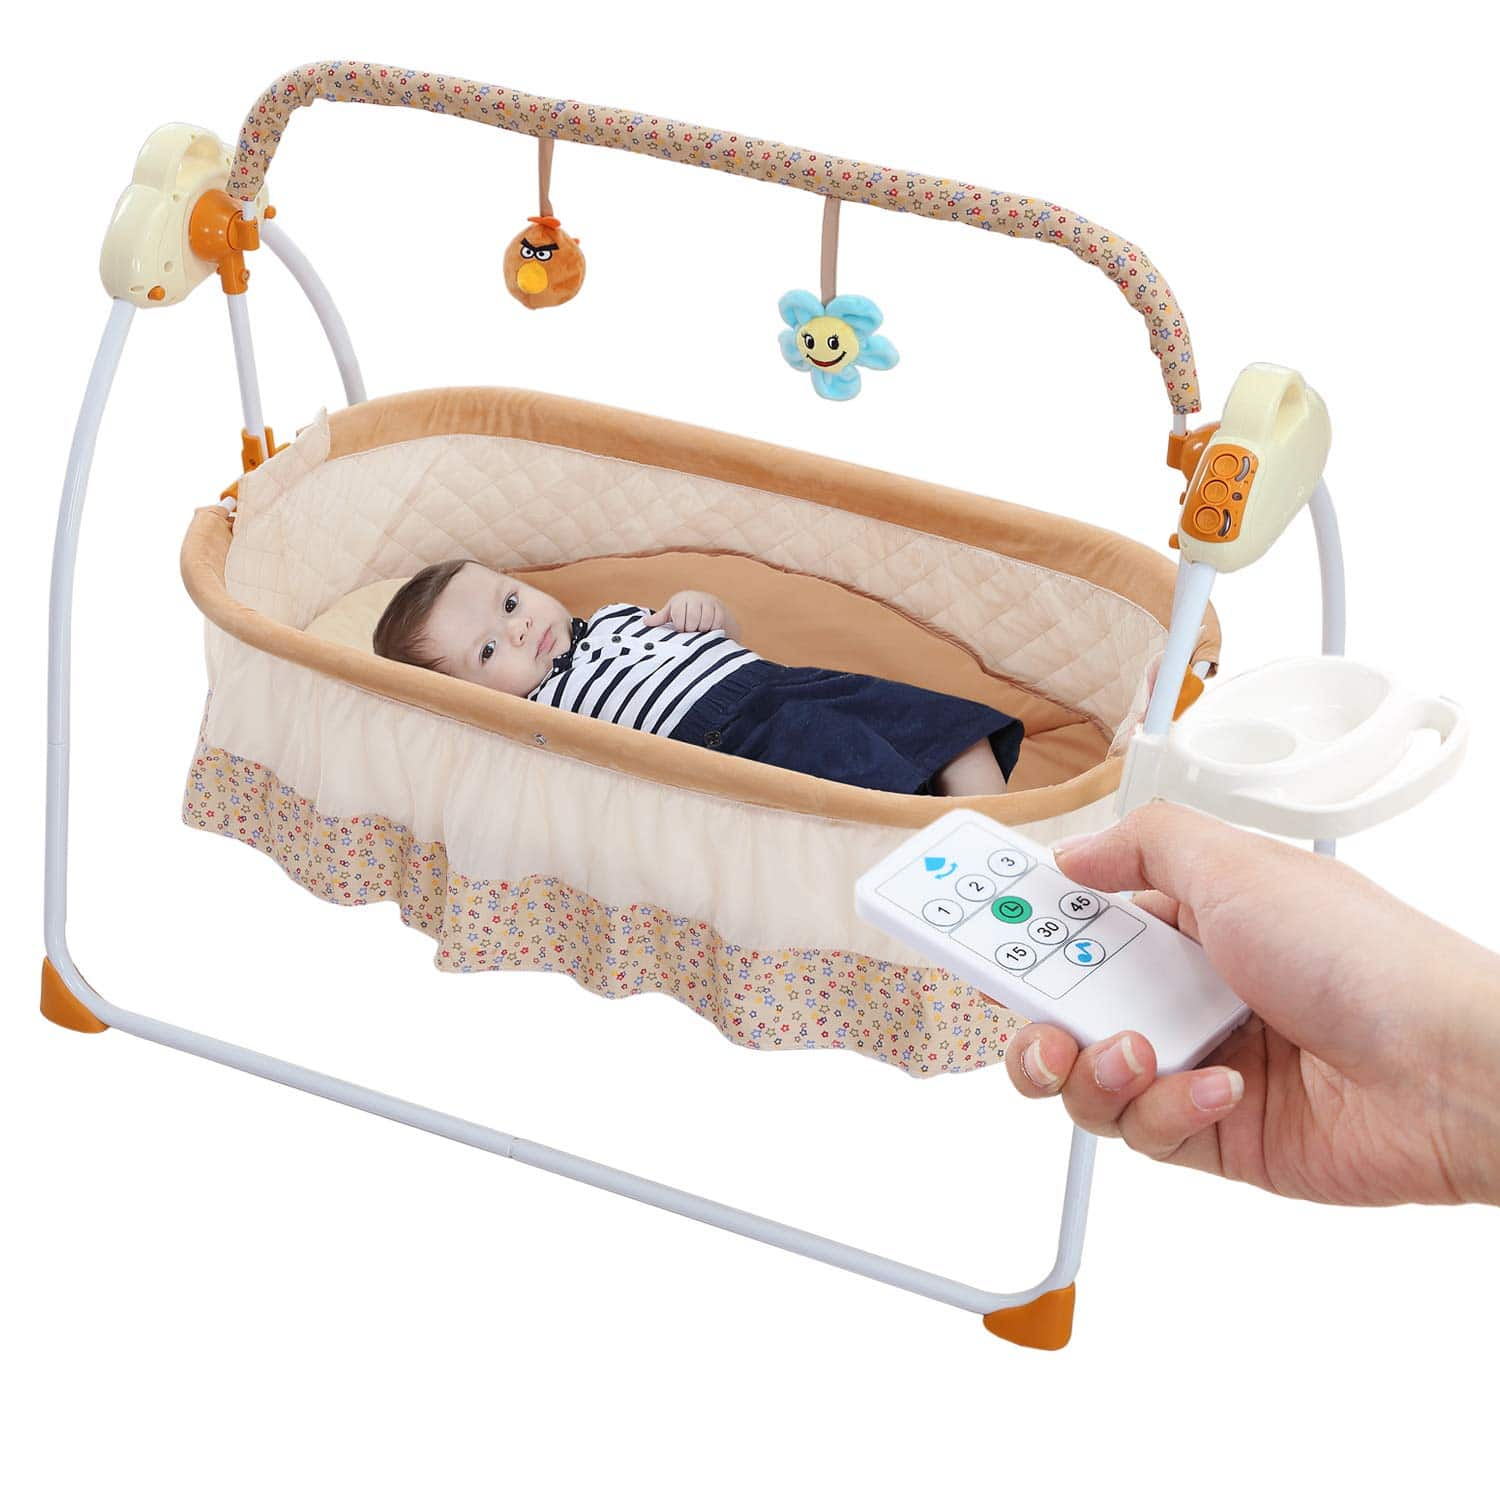 WBPINE Baby Cradle Swing